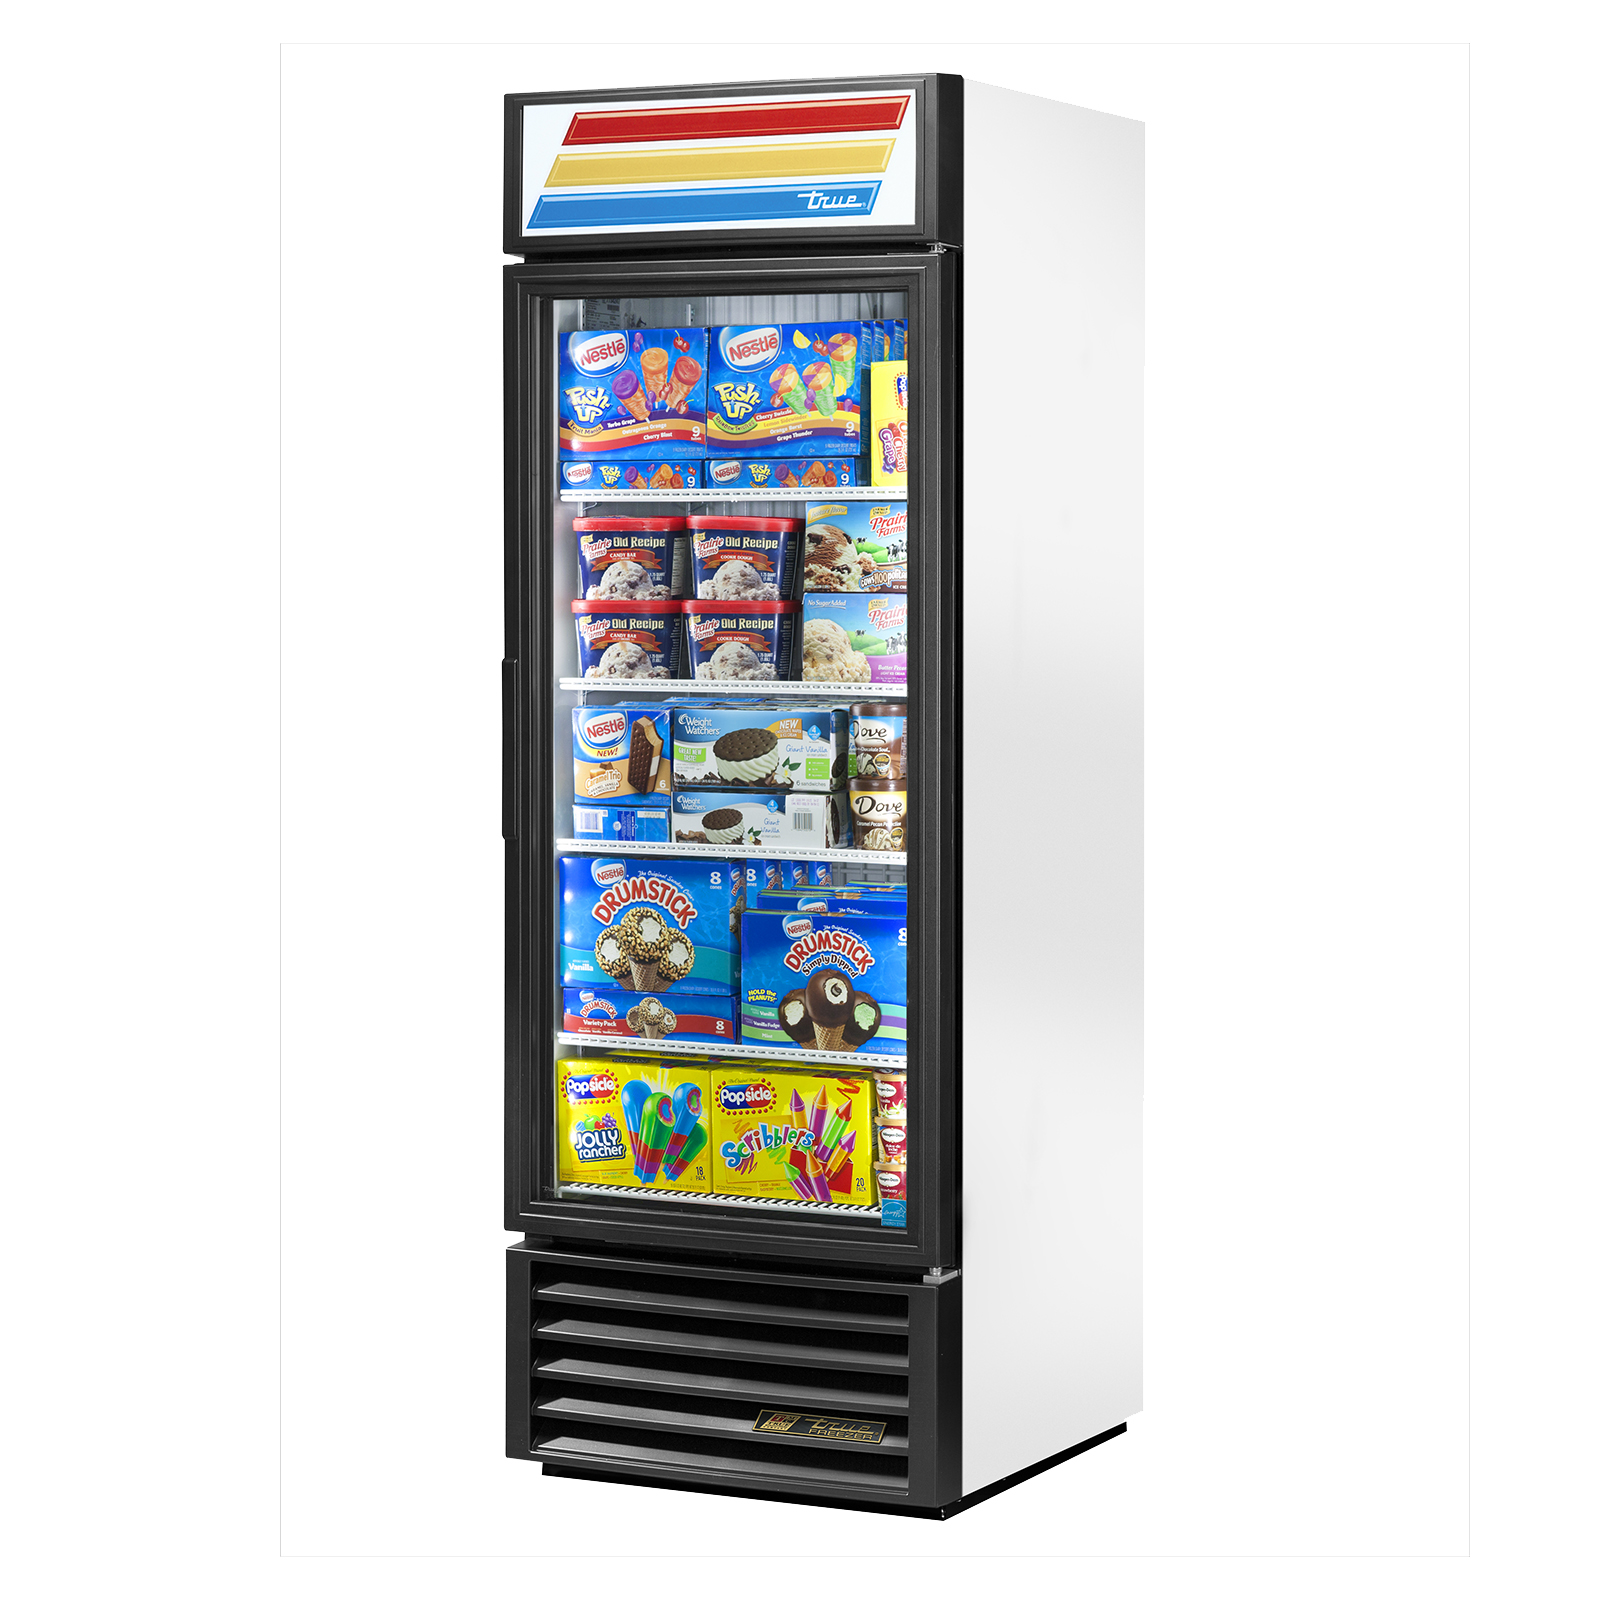 GDM-23F-LD True - Freezer Merchandiser one-section